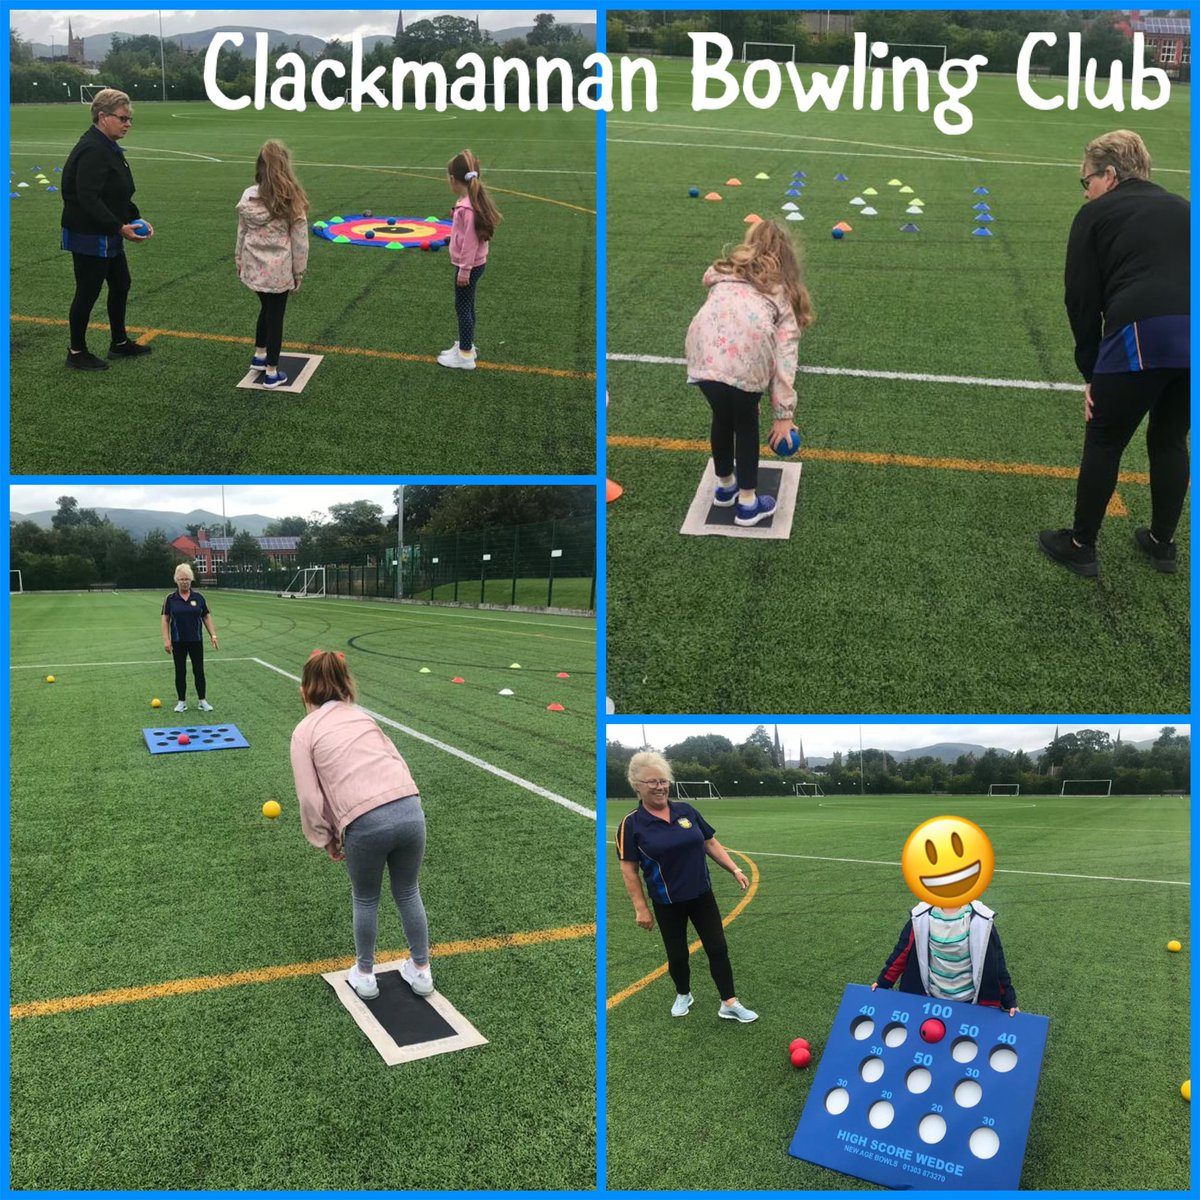 CLUB CONNECT Todays #clubconnect is from Kathryn & Marie from Clackmannan BC They r helping deliver lawn bowls at the @AlloaAcademy summer learning hub for children of key workers & vulnerable families. Thanks for the support guys 👍 #clubs @sportscotland @ClacksEducation https://t.co/AgFEvSWw4L